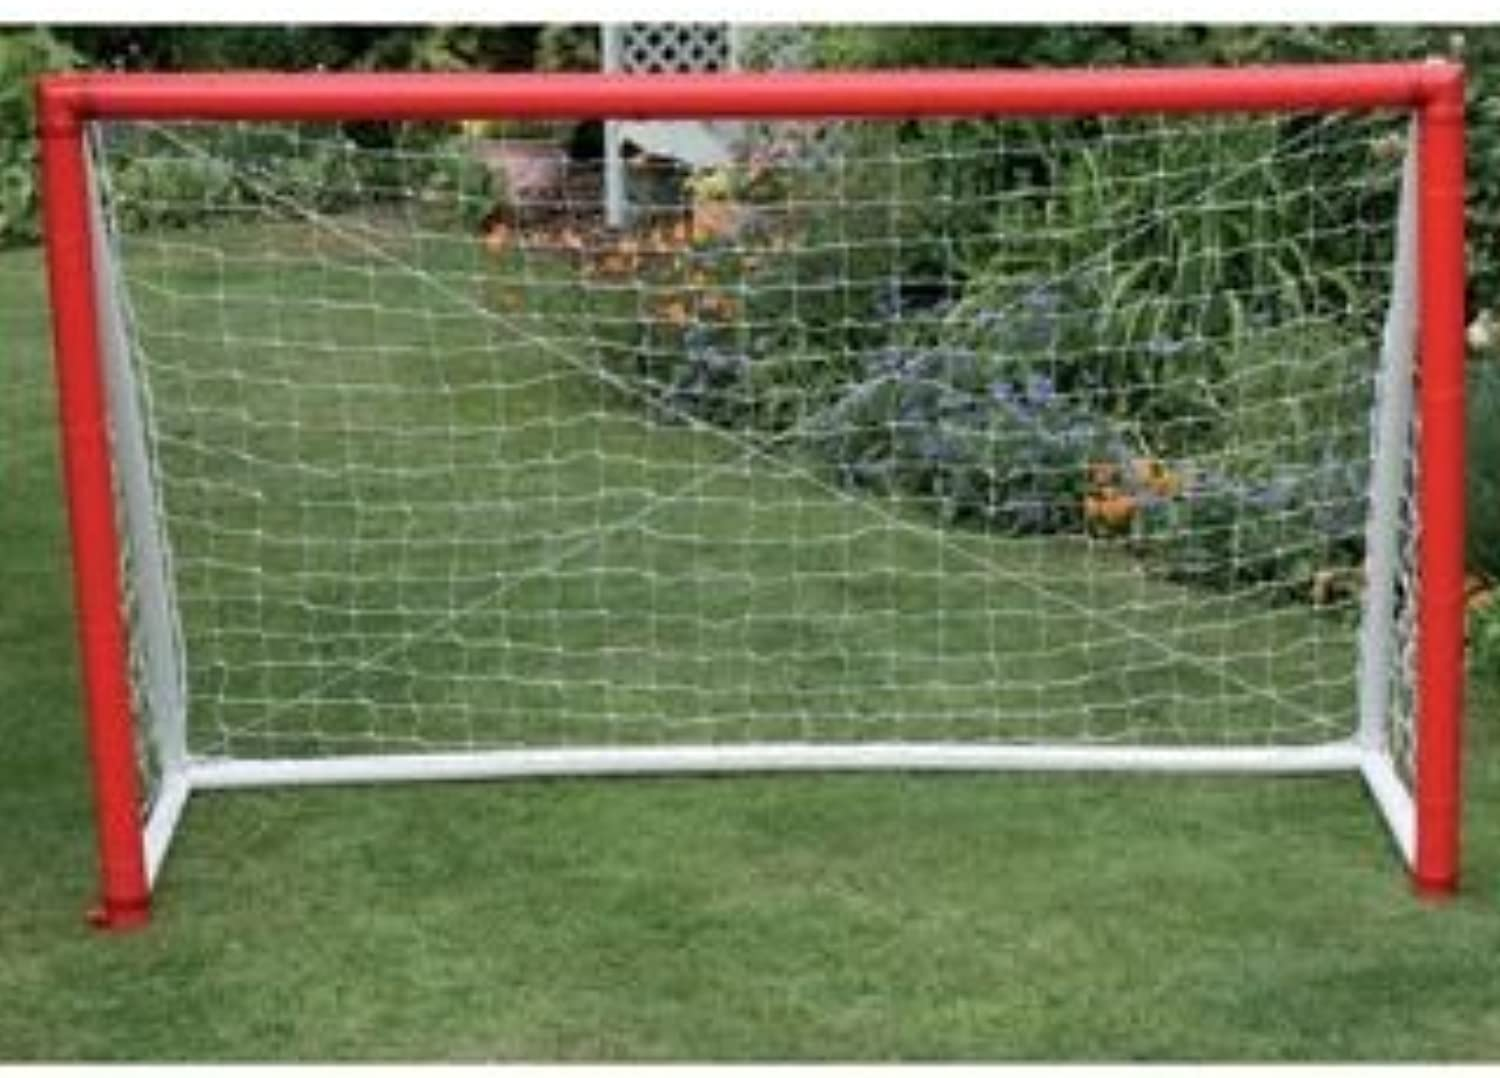 IGoal Inflatable Home Goal 240 x 160 240x160cm 8x5in